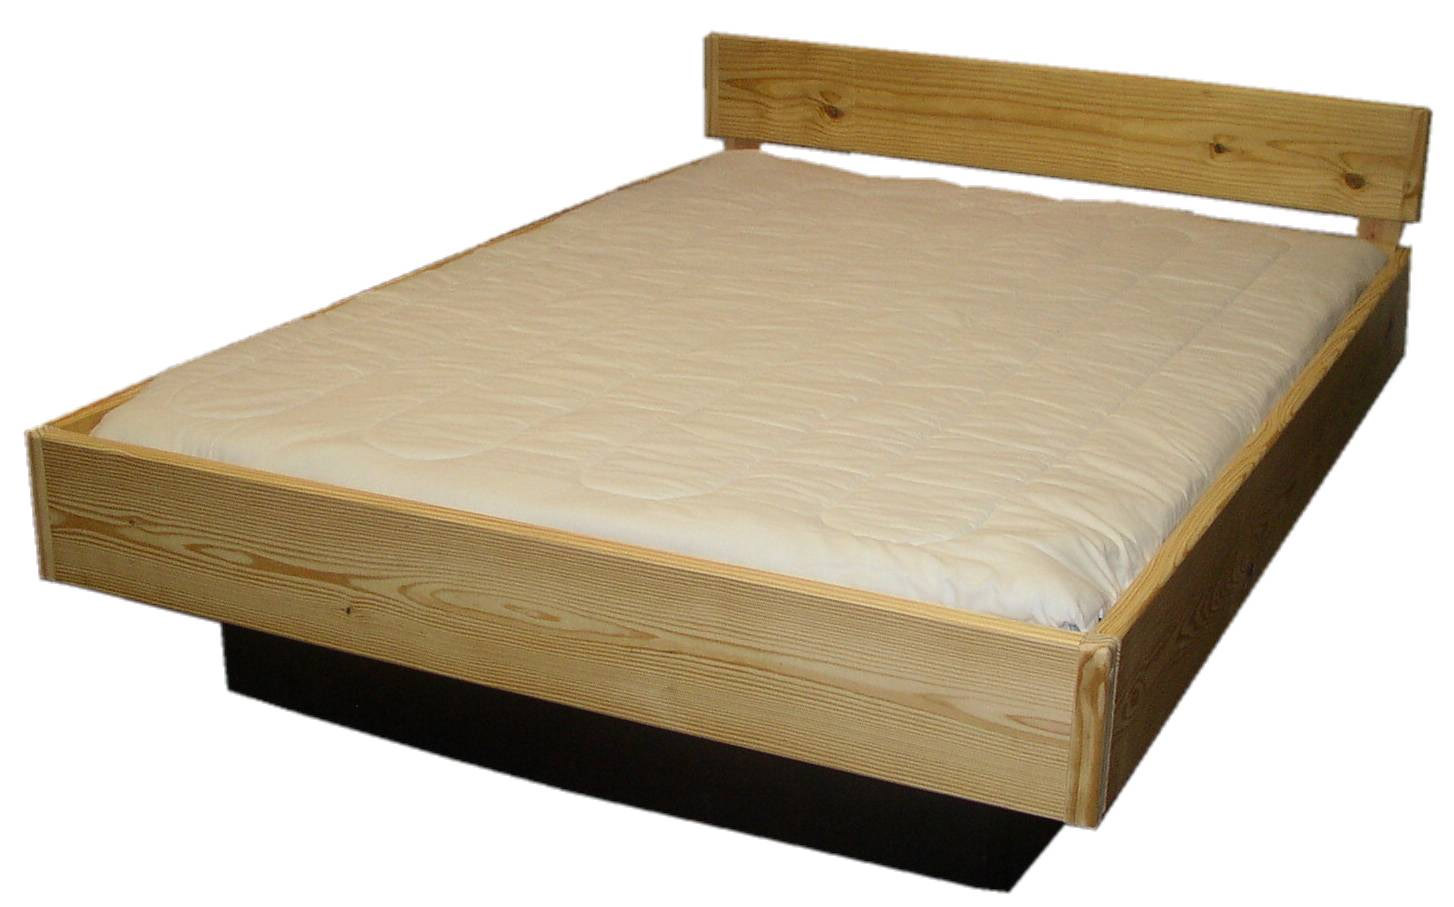 Hardside And Softside Waterbed Comparison